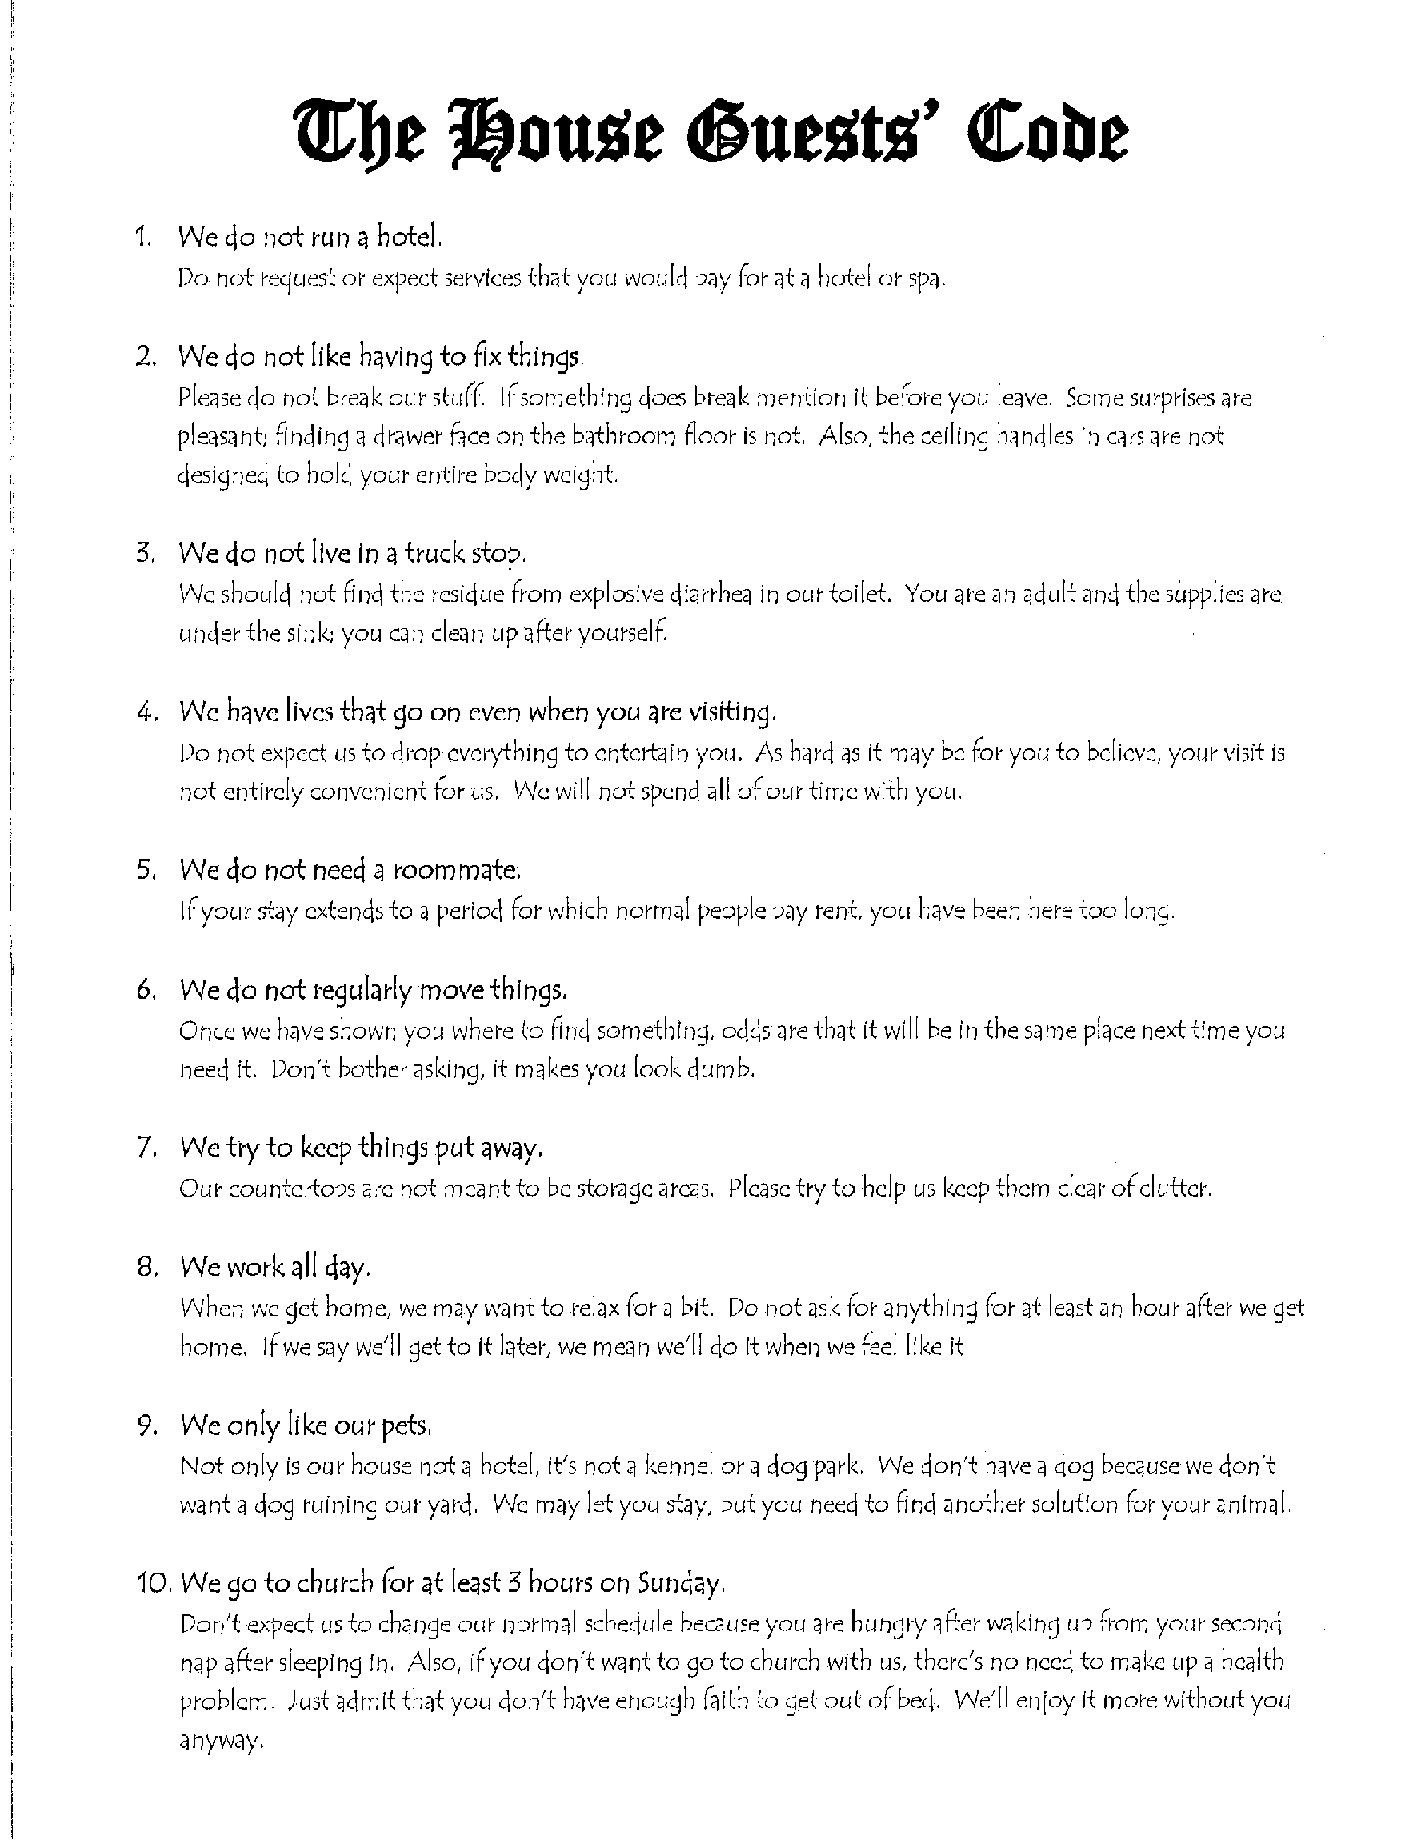 a list of rules every house guest should abide by  there